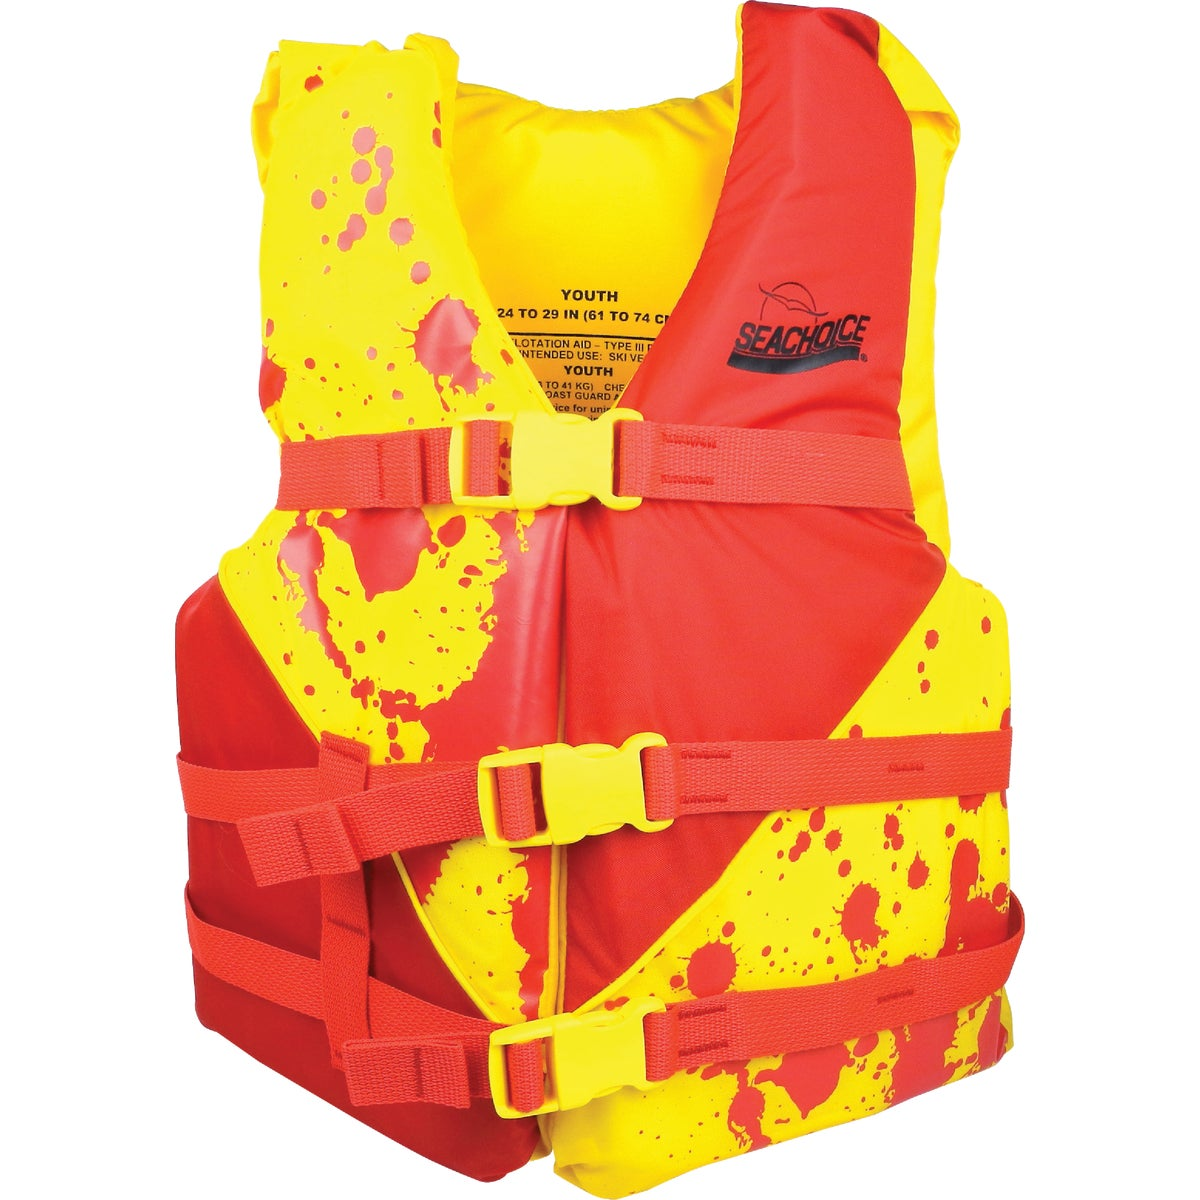 50-90LB YOUTH VEST - 86170 by Seachoice Prod